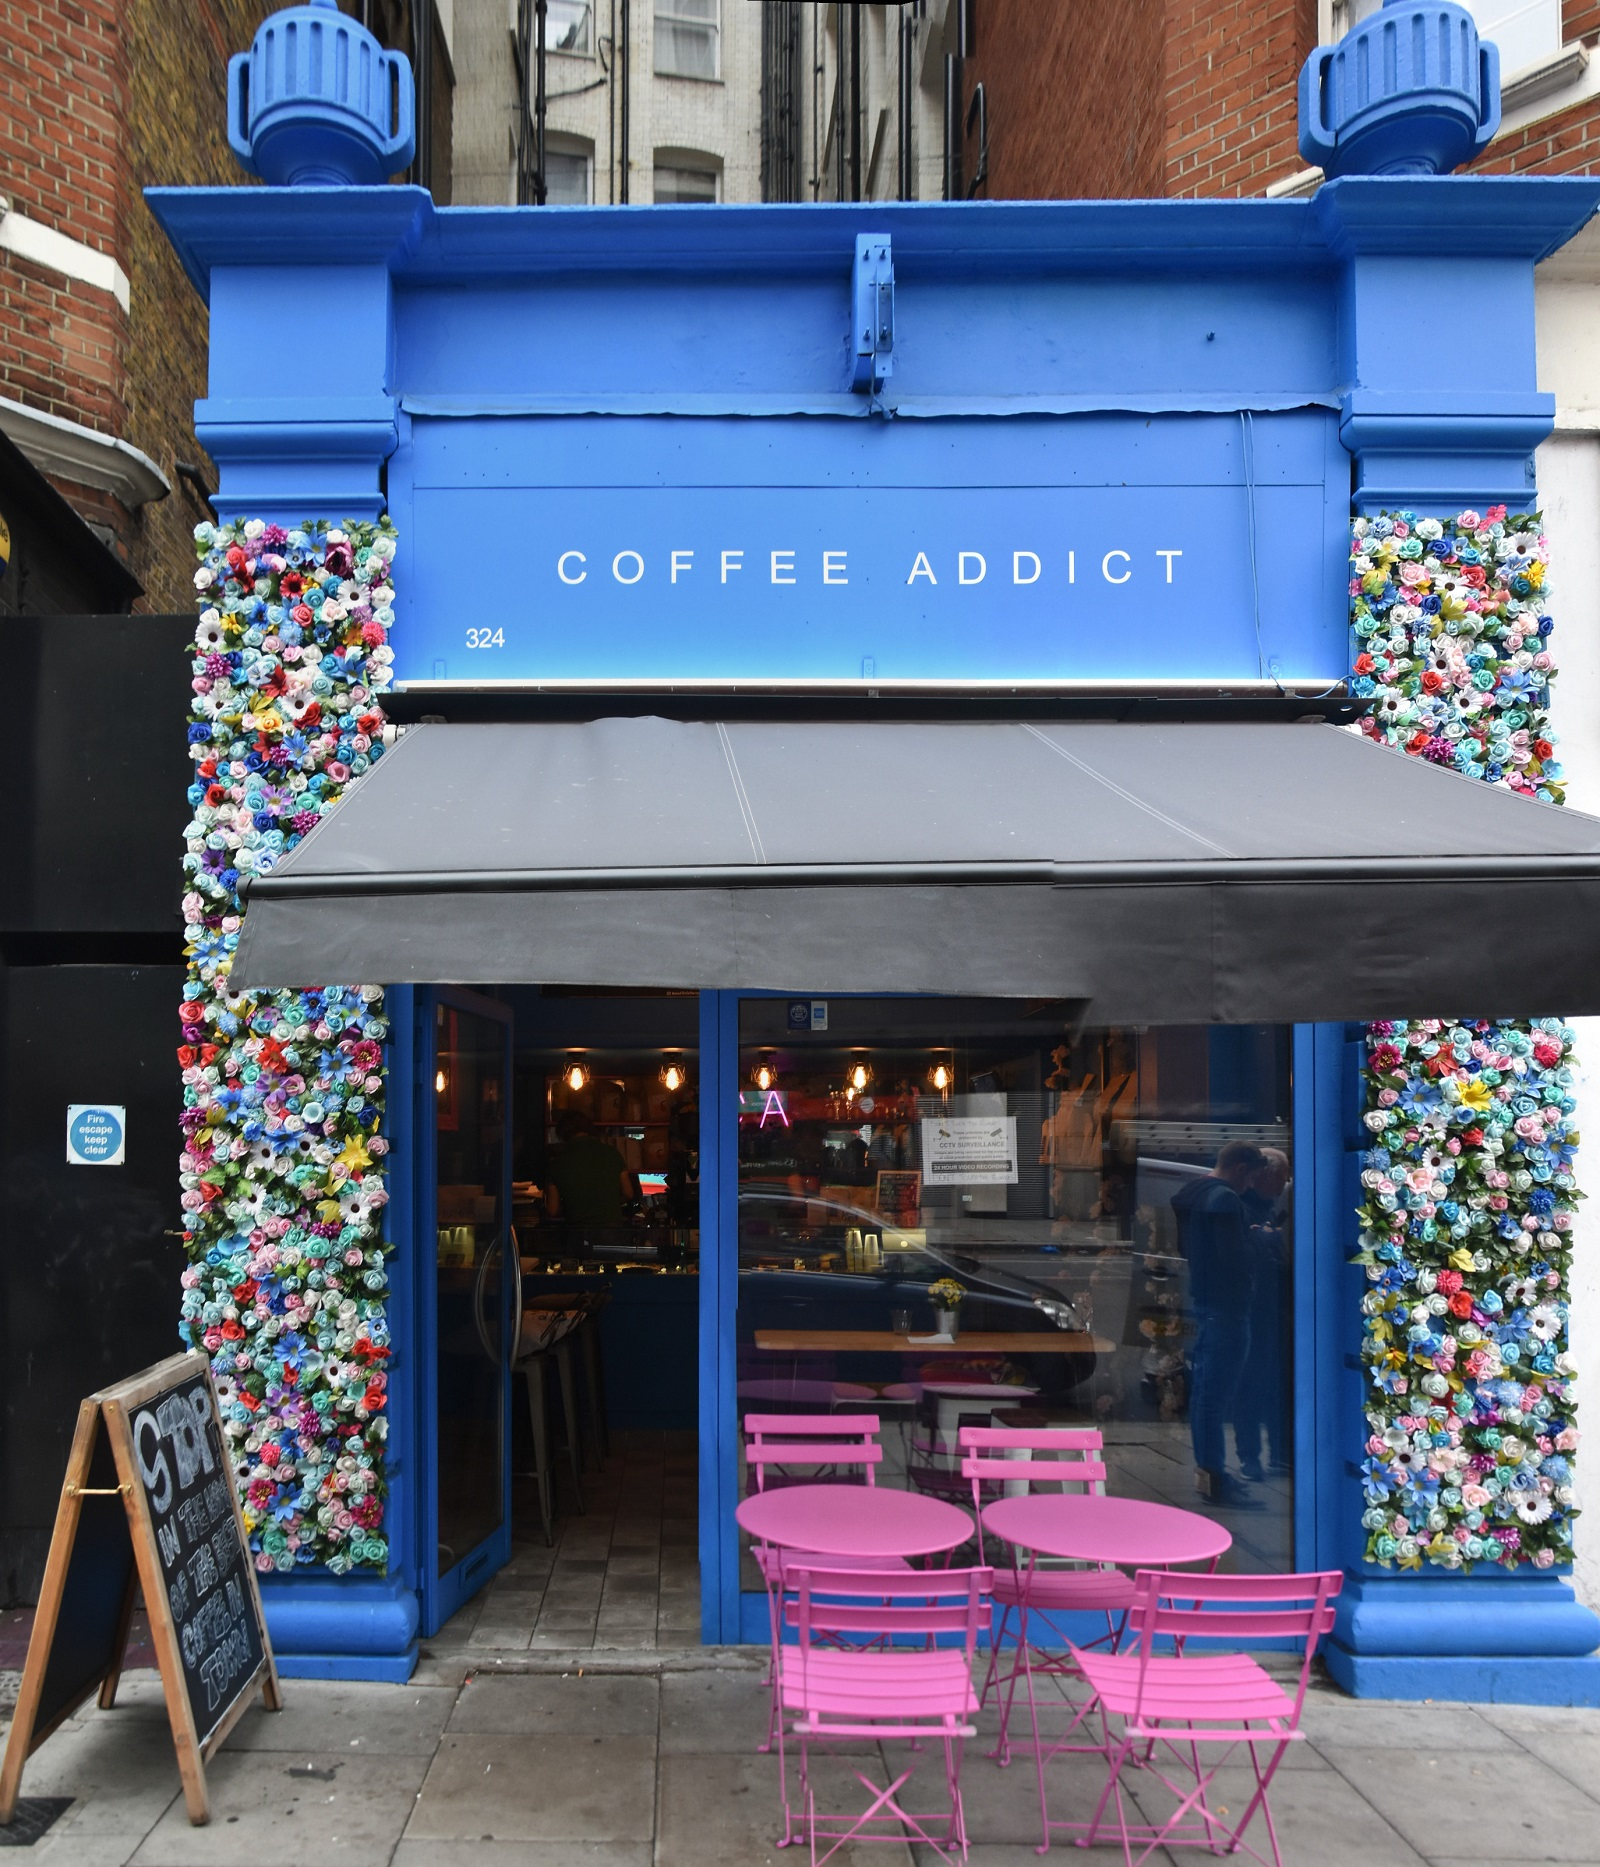 Coffee Addict on Vauxhall Bridge Road, occupying the site of the original Costa Coffee, which opened in 1978 (Coffee Addict, in contrast, opened in 2019)